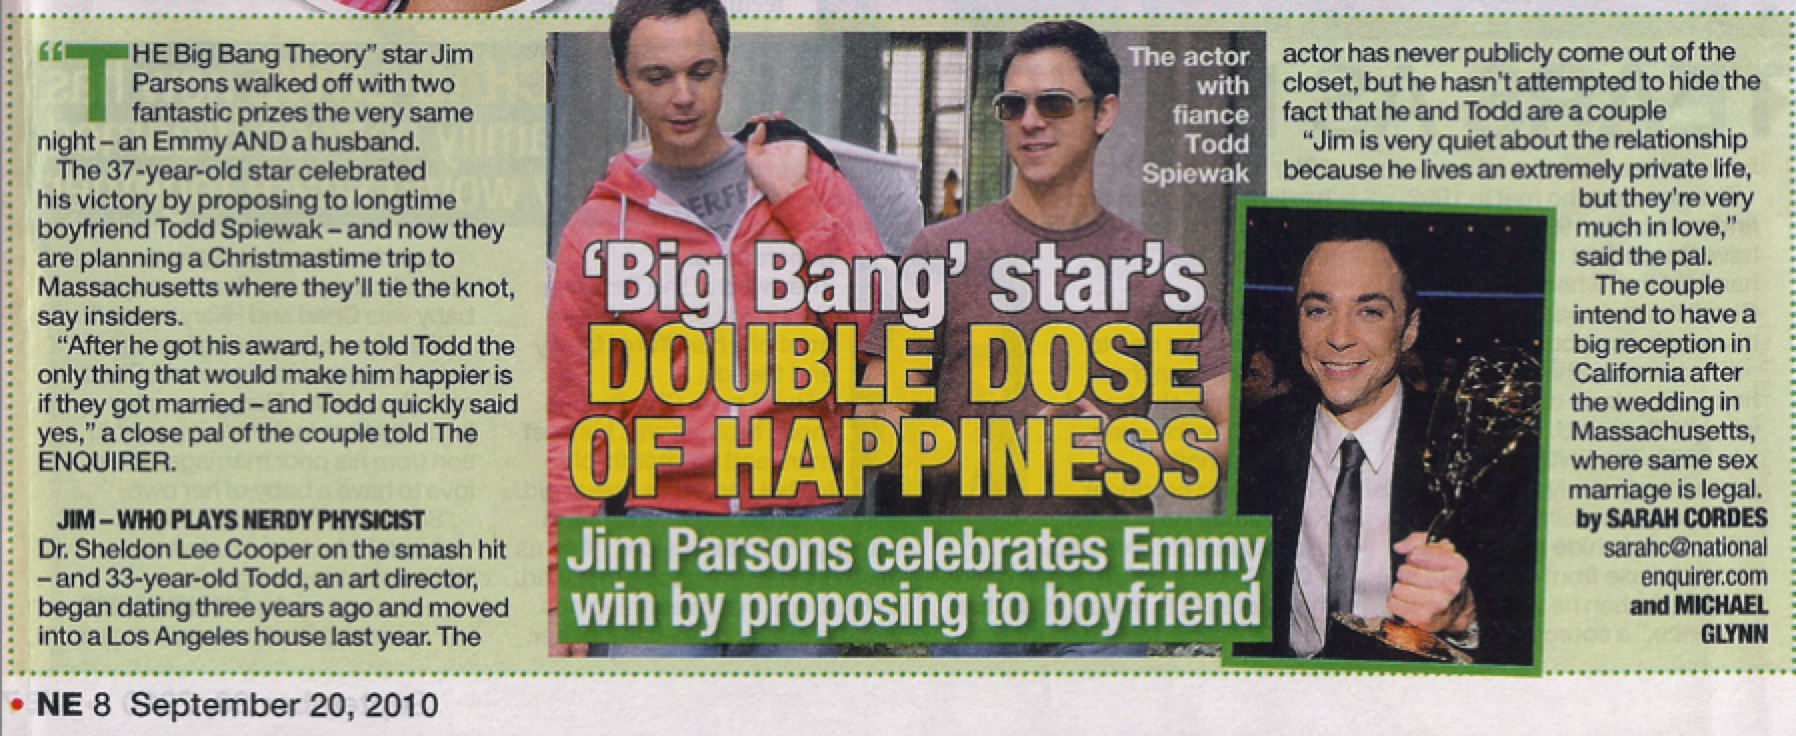 Emmy-winner Jim Parsons plays